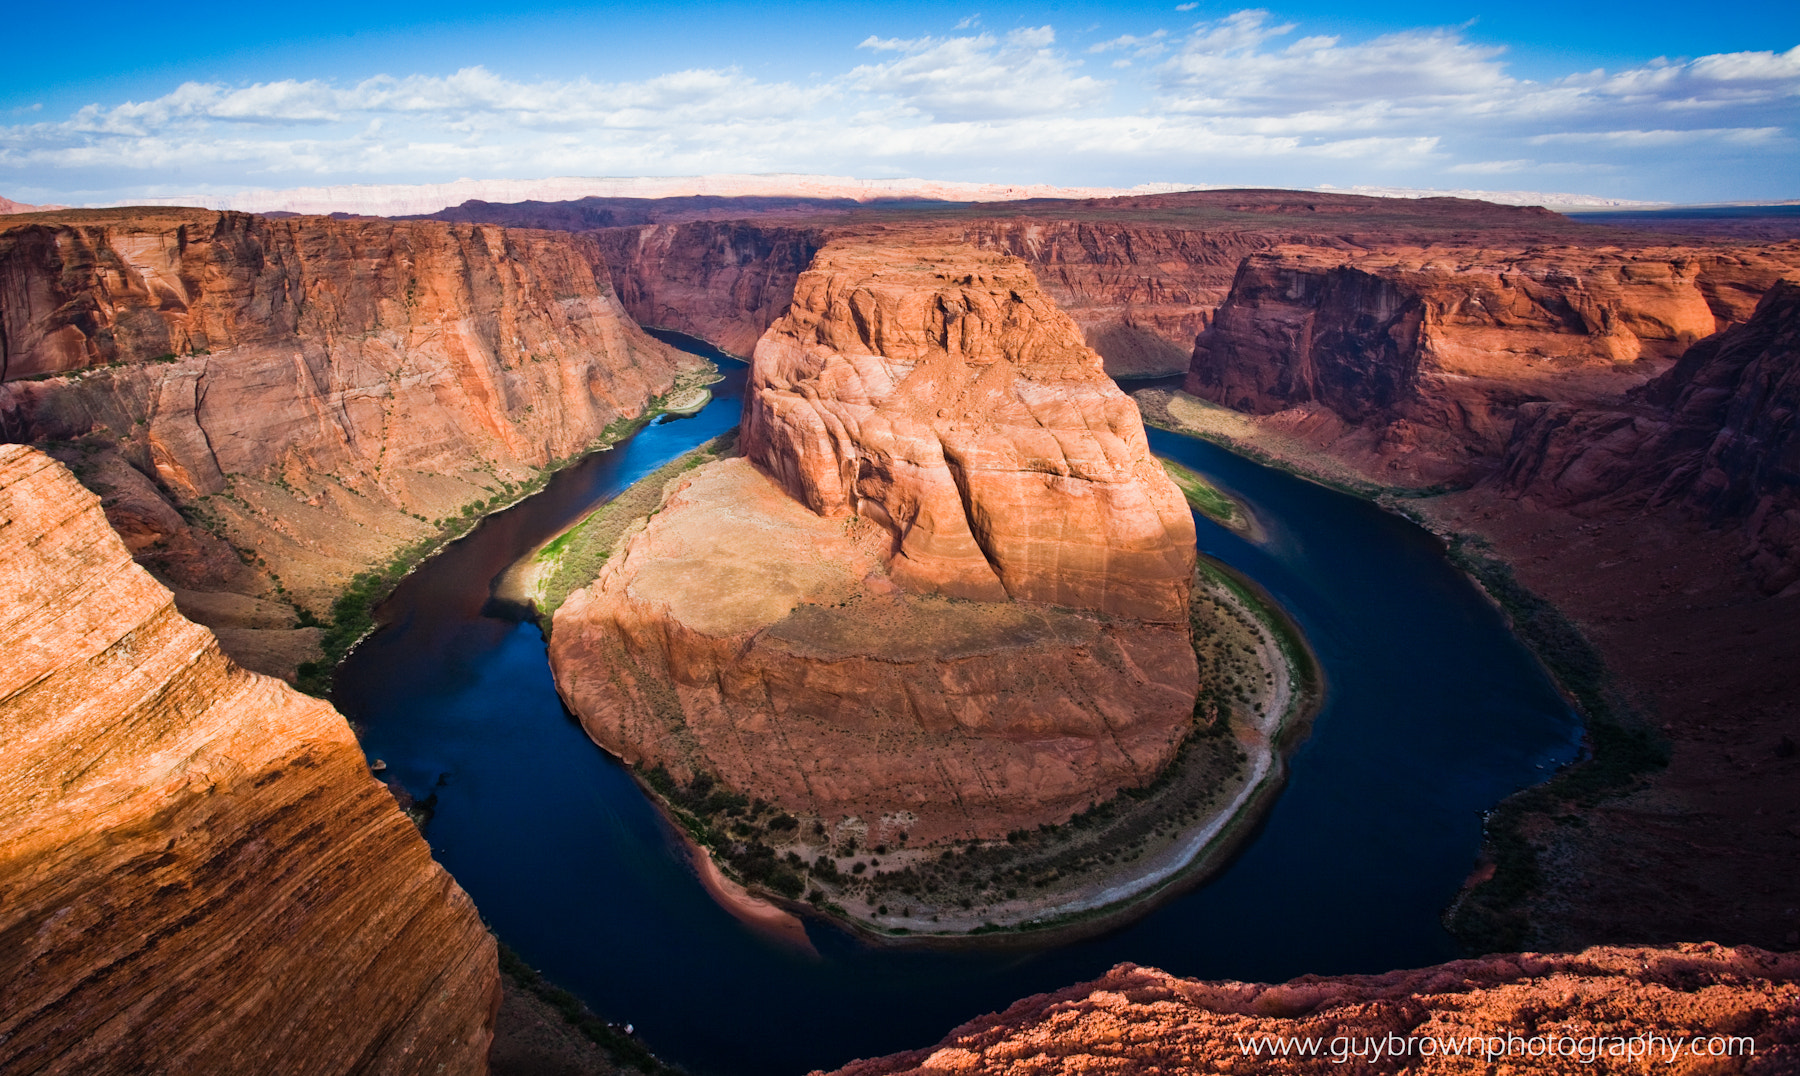 Photograph Horse Shoe Bend, Page, Arizona by Guy Brown on 500px